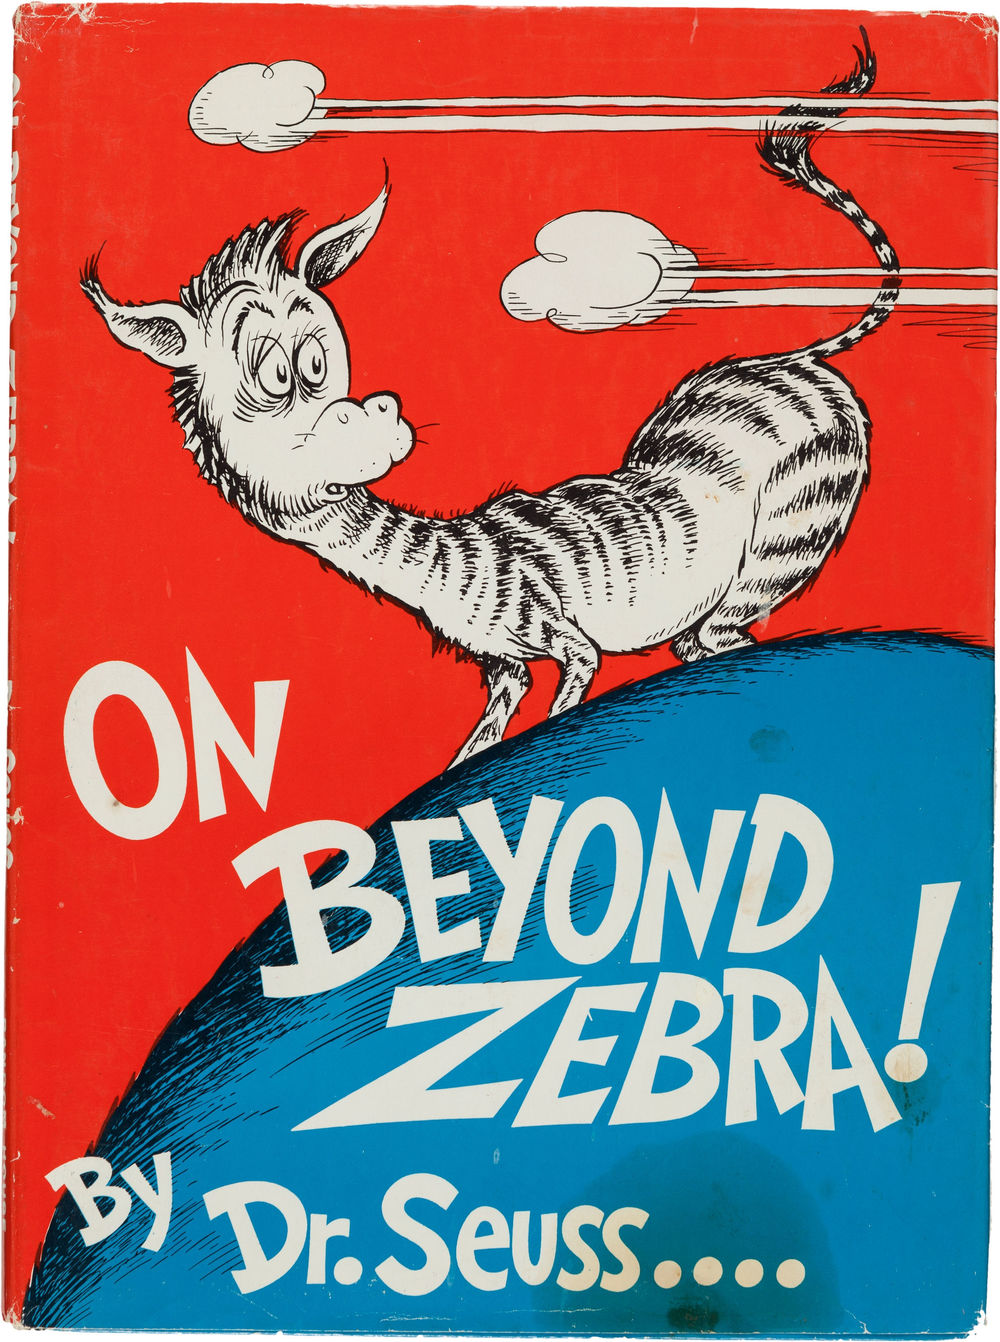 """In the places I go there are things that I see / That I never could spell if I stopped with the Z. / I'm telling you this 'cause you're one of my friends. / My alphabet starts where your alphabet ends!"" Dr. Seuss. On Beyond Zebra. New York: [1955]. First edition, first issue dust jacket. via"